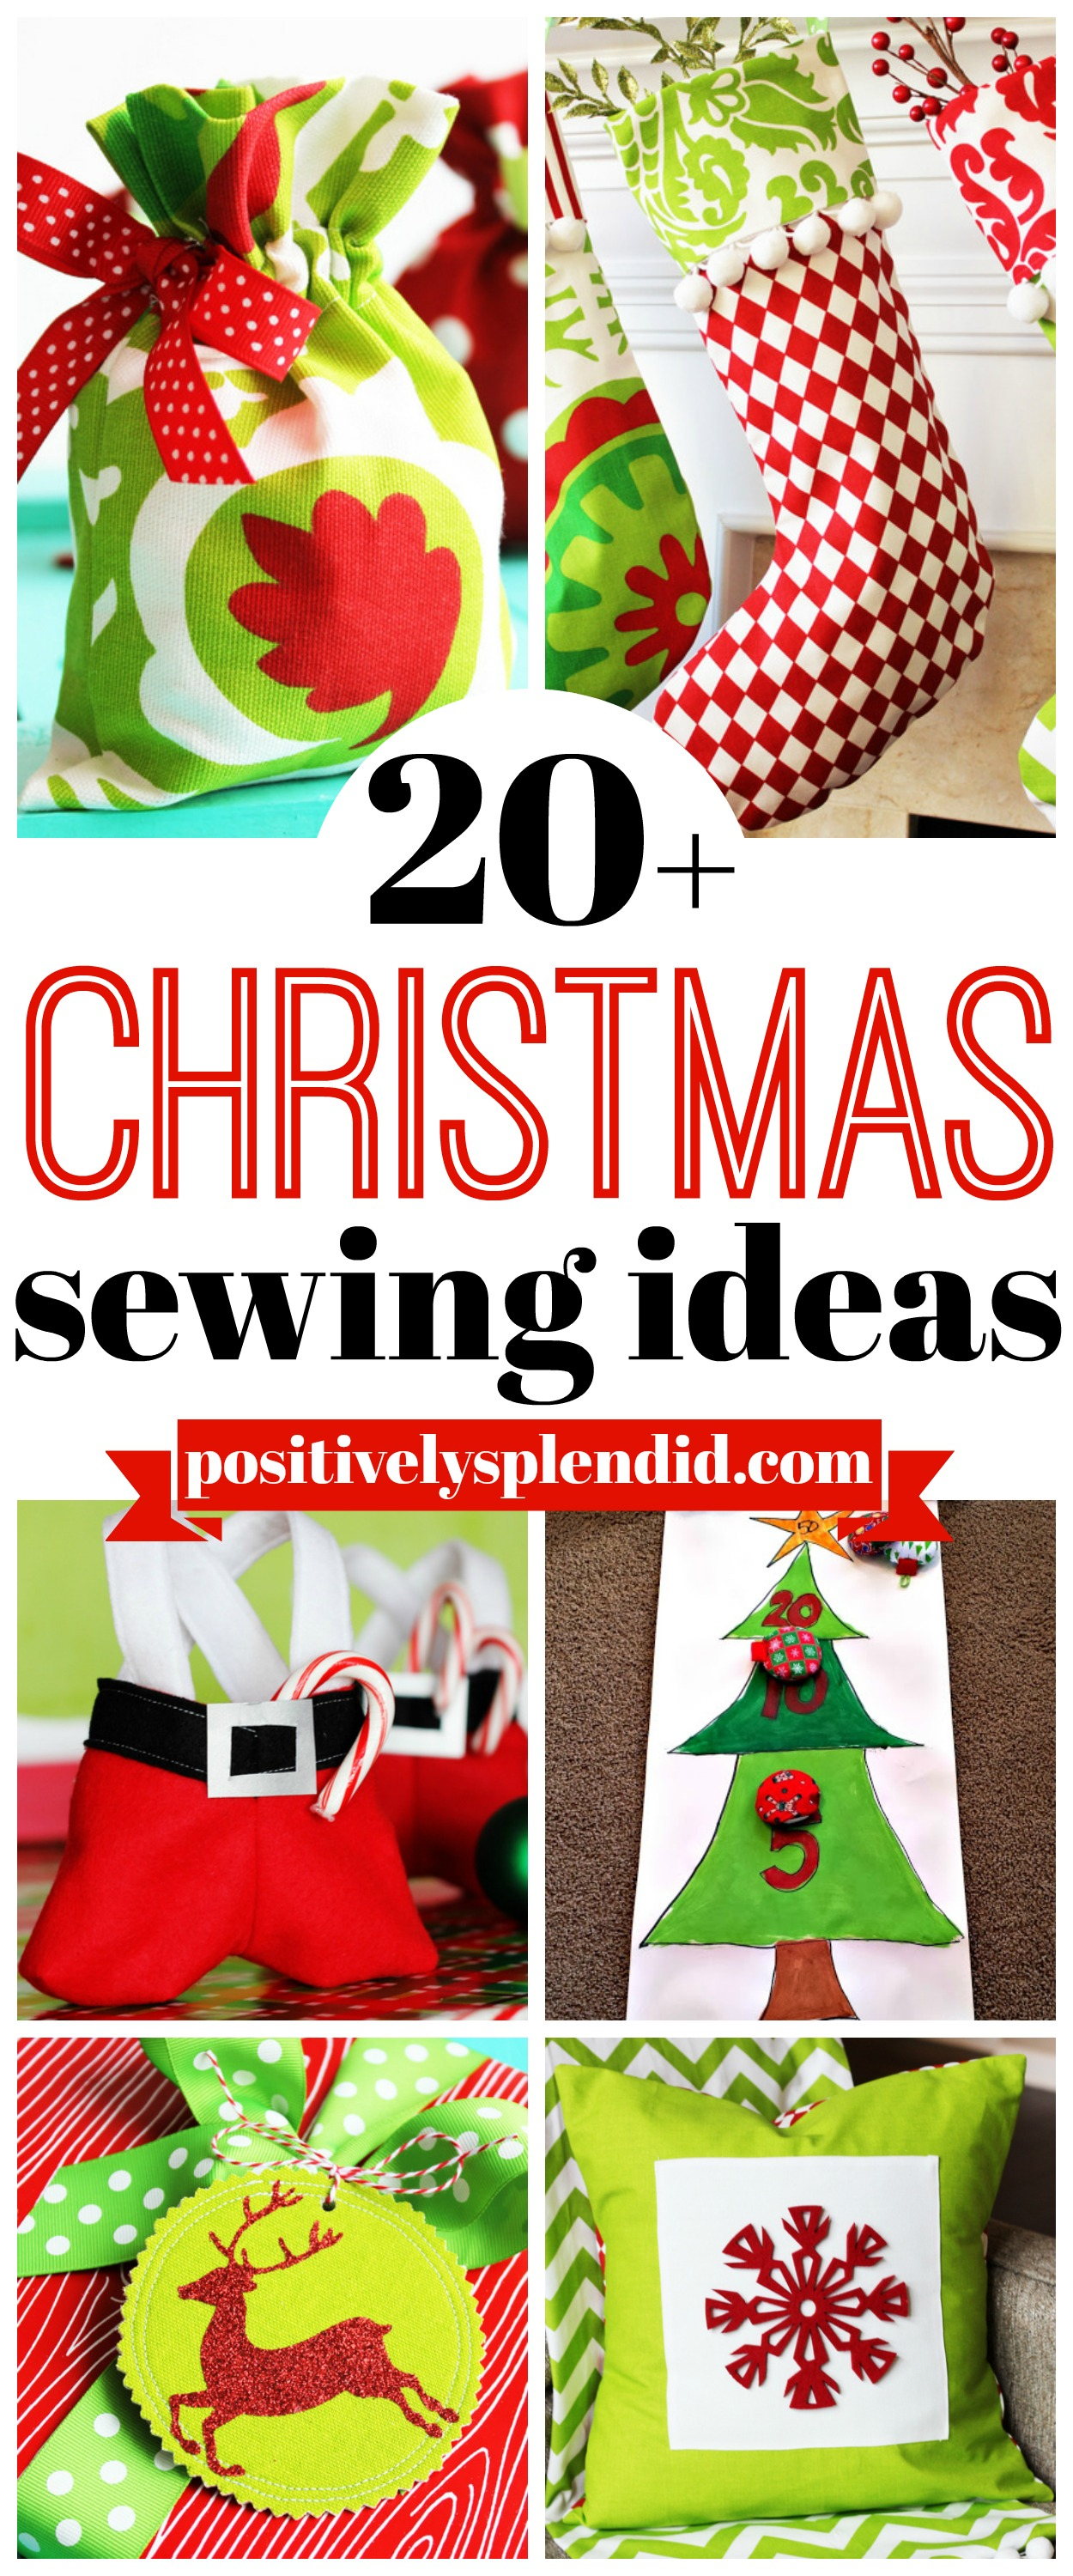 Christmas Sewing Ideas - 20+ great projects to make for the holidays!